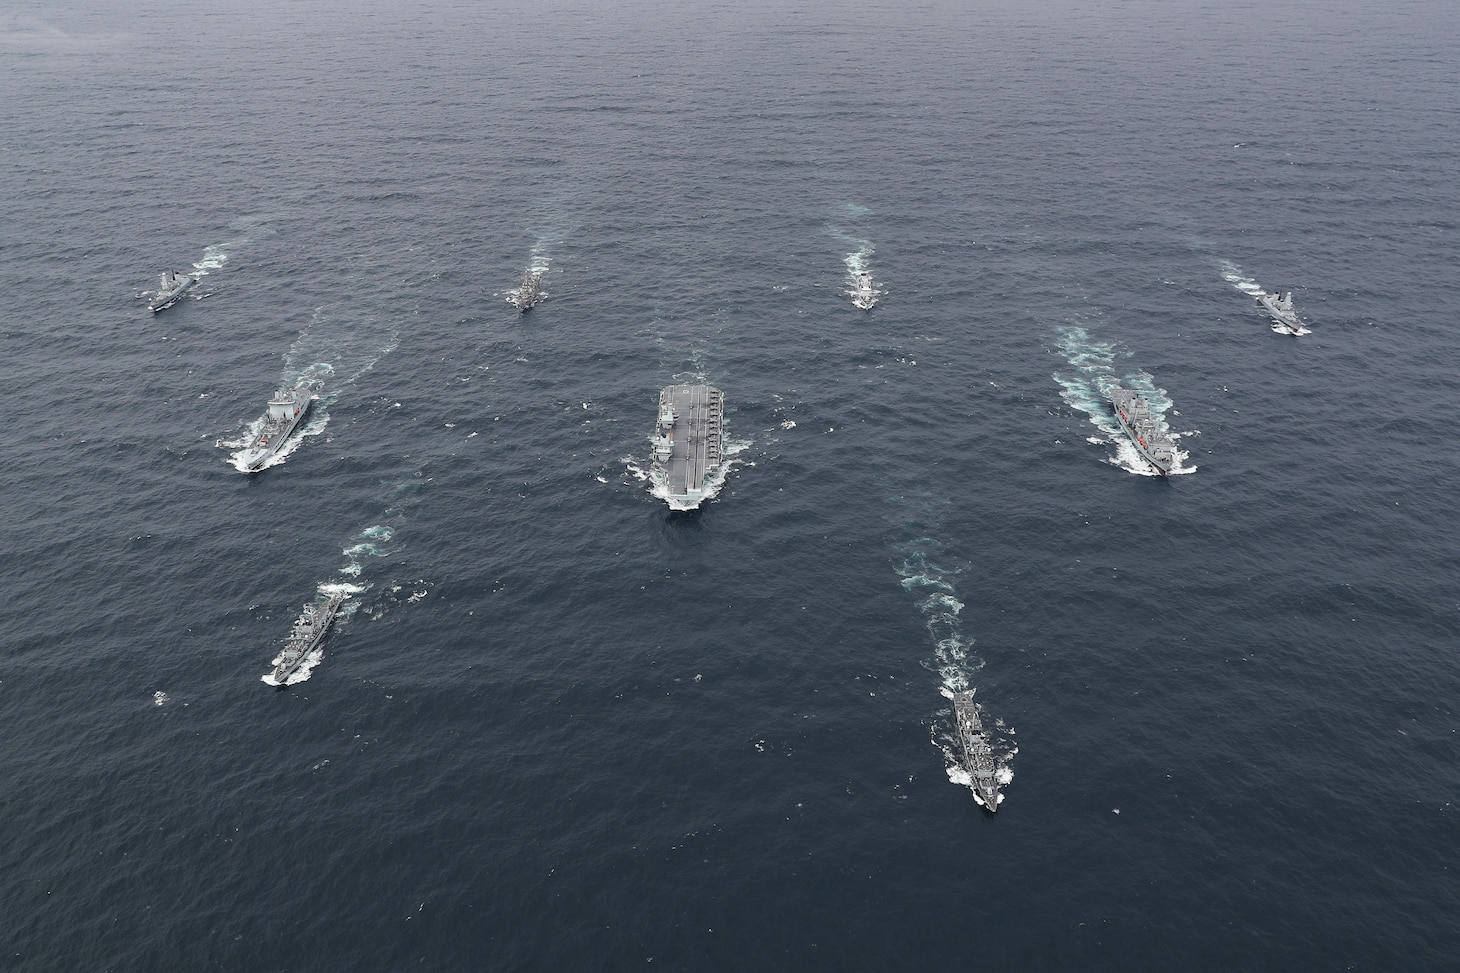 The full United Kingdom (UK) Carrier Strike Group (CSG) sails in formation for a photo exercise (PHOTOEX).